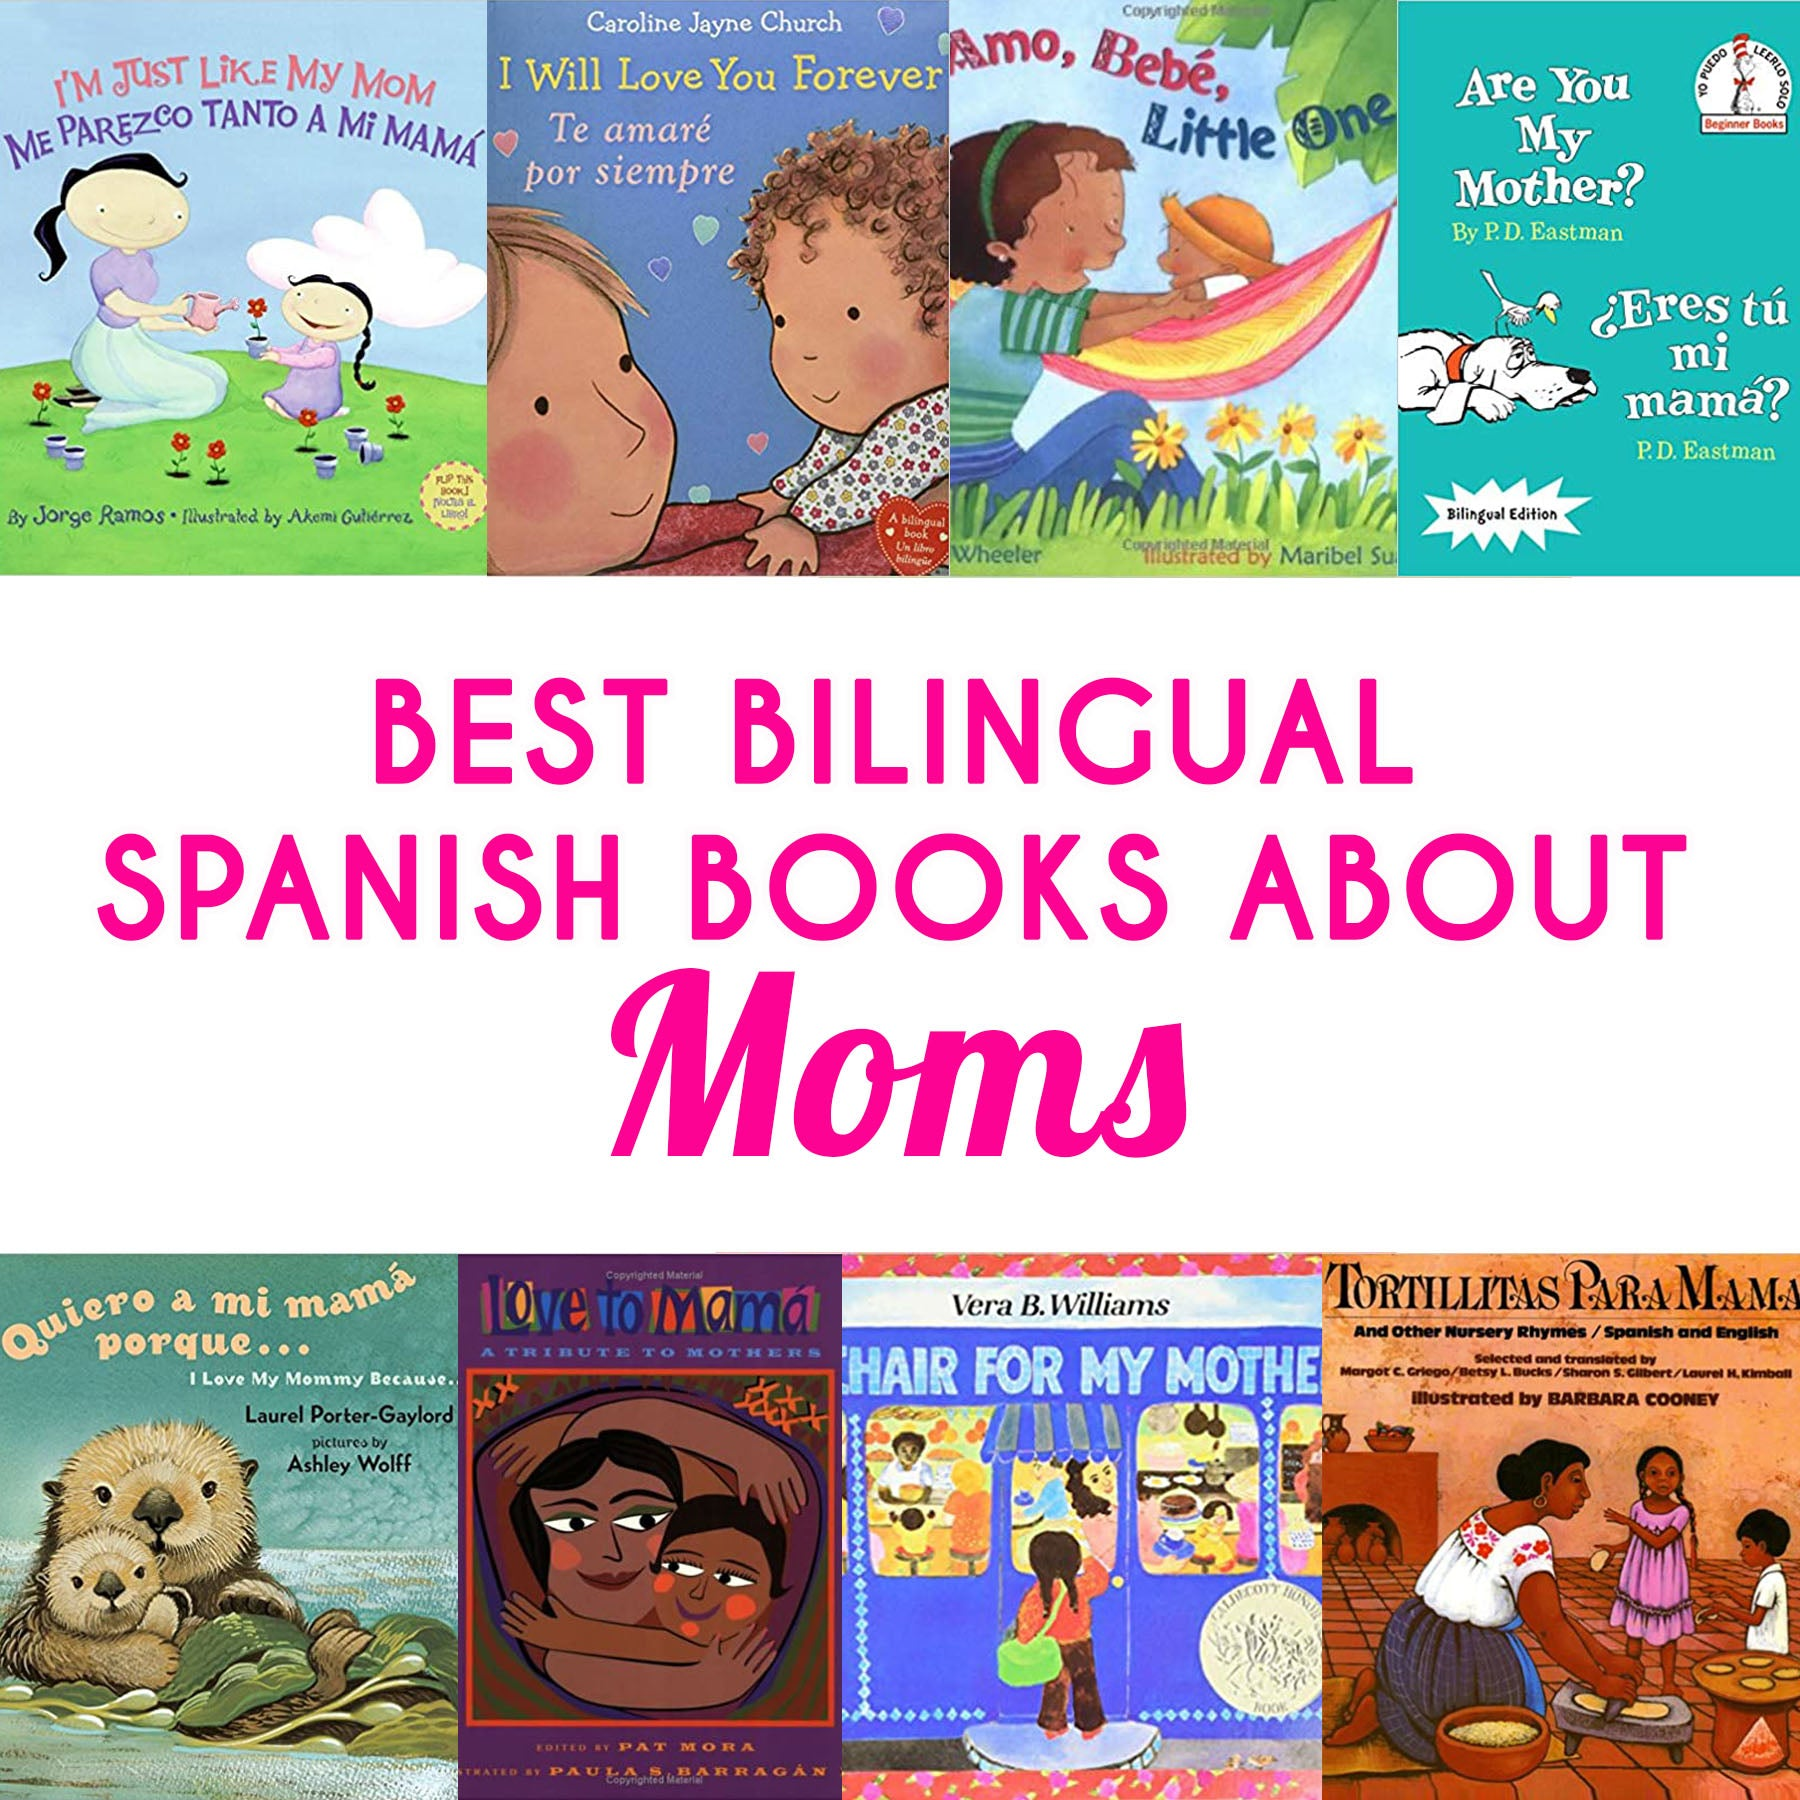 8 Bilingual Spanish Kids' Books About Moms